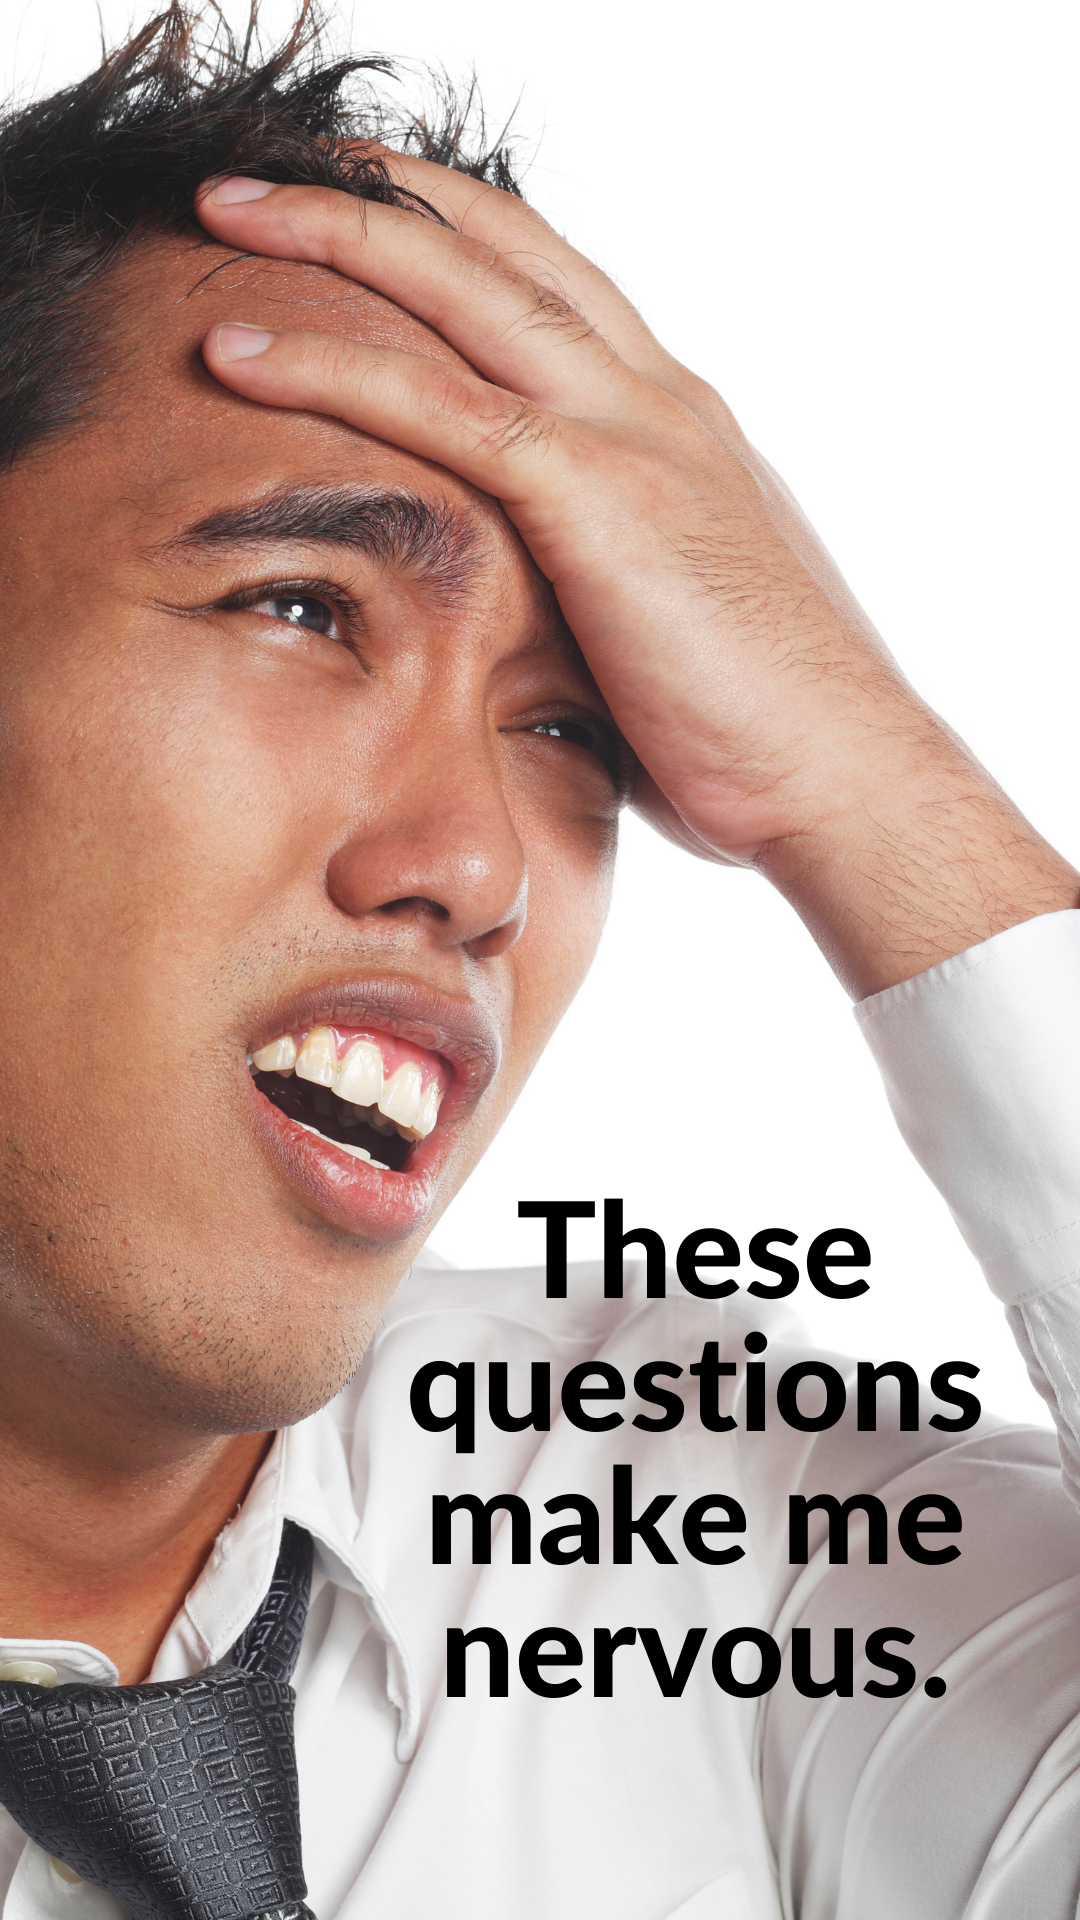 Top 10 most difficult interview questions: These questions make me nervous.